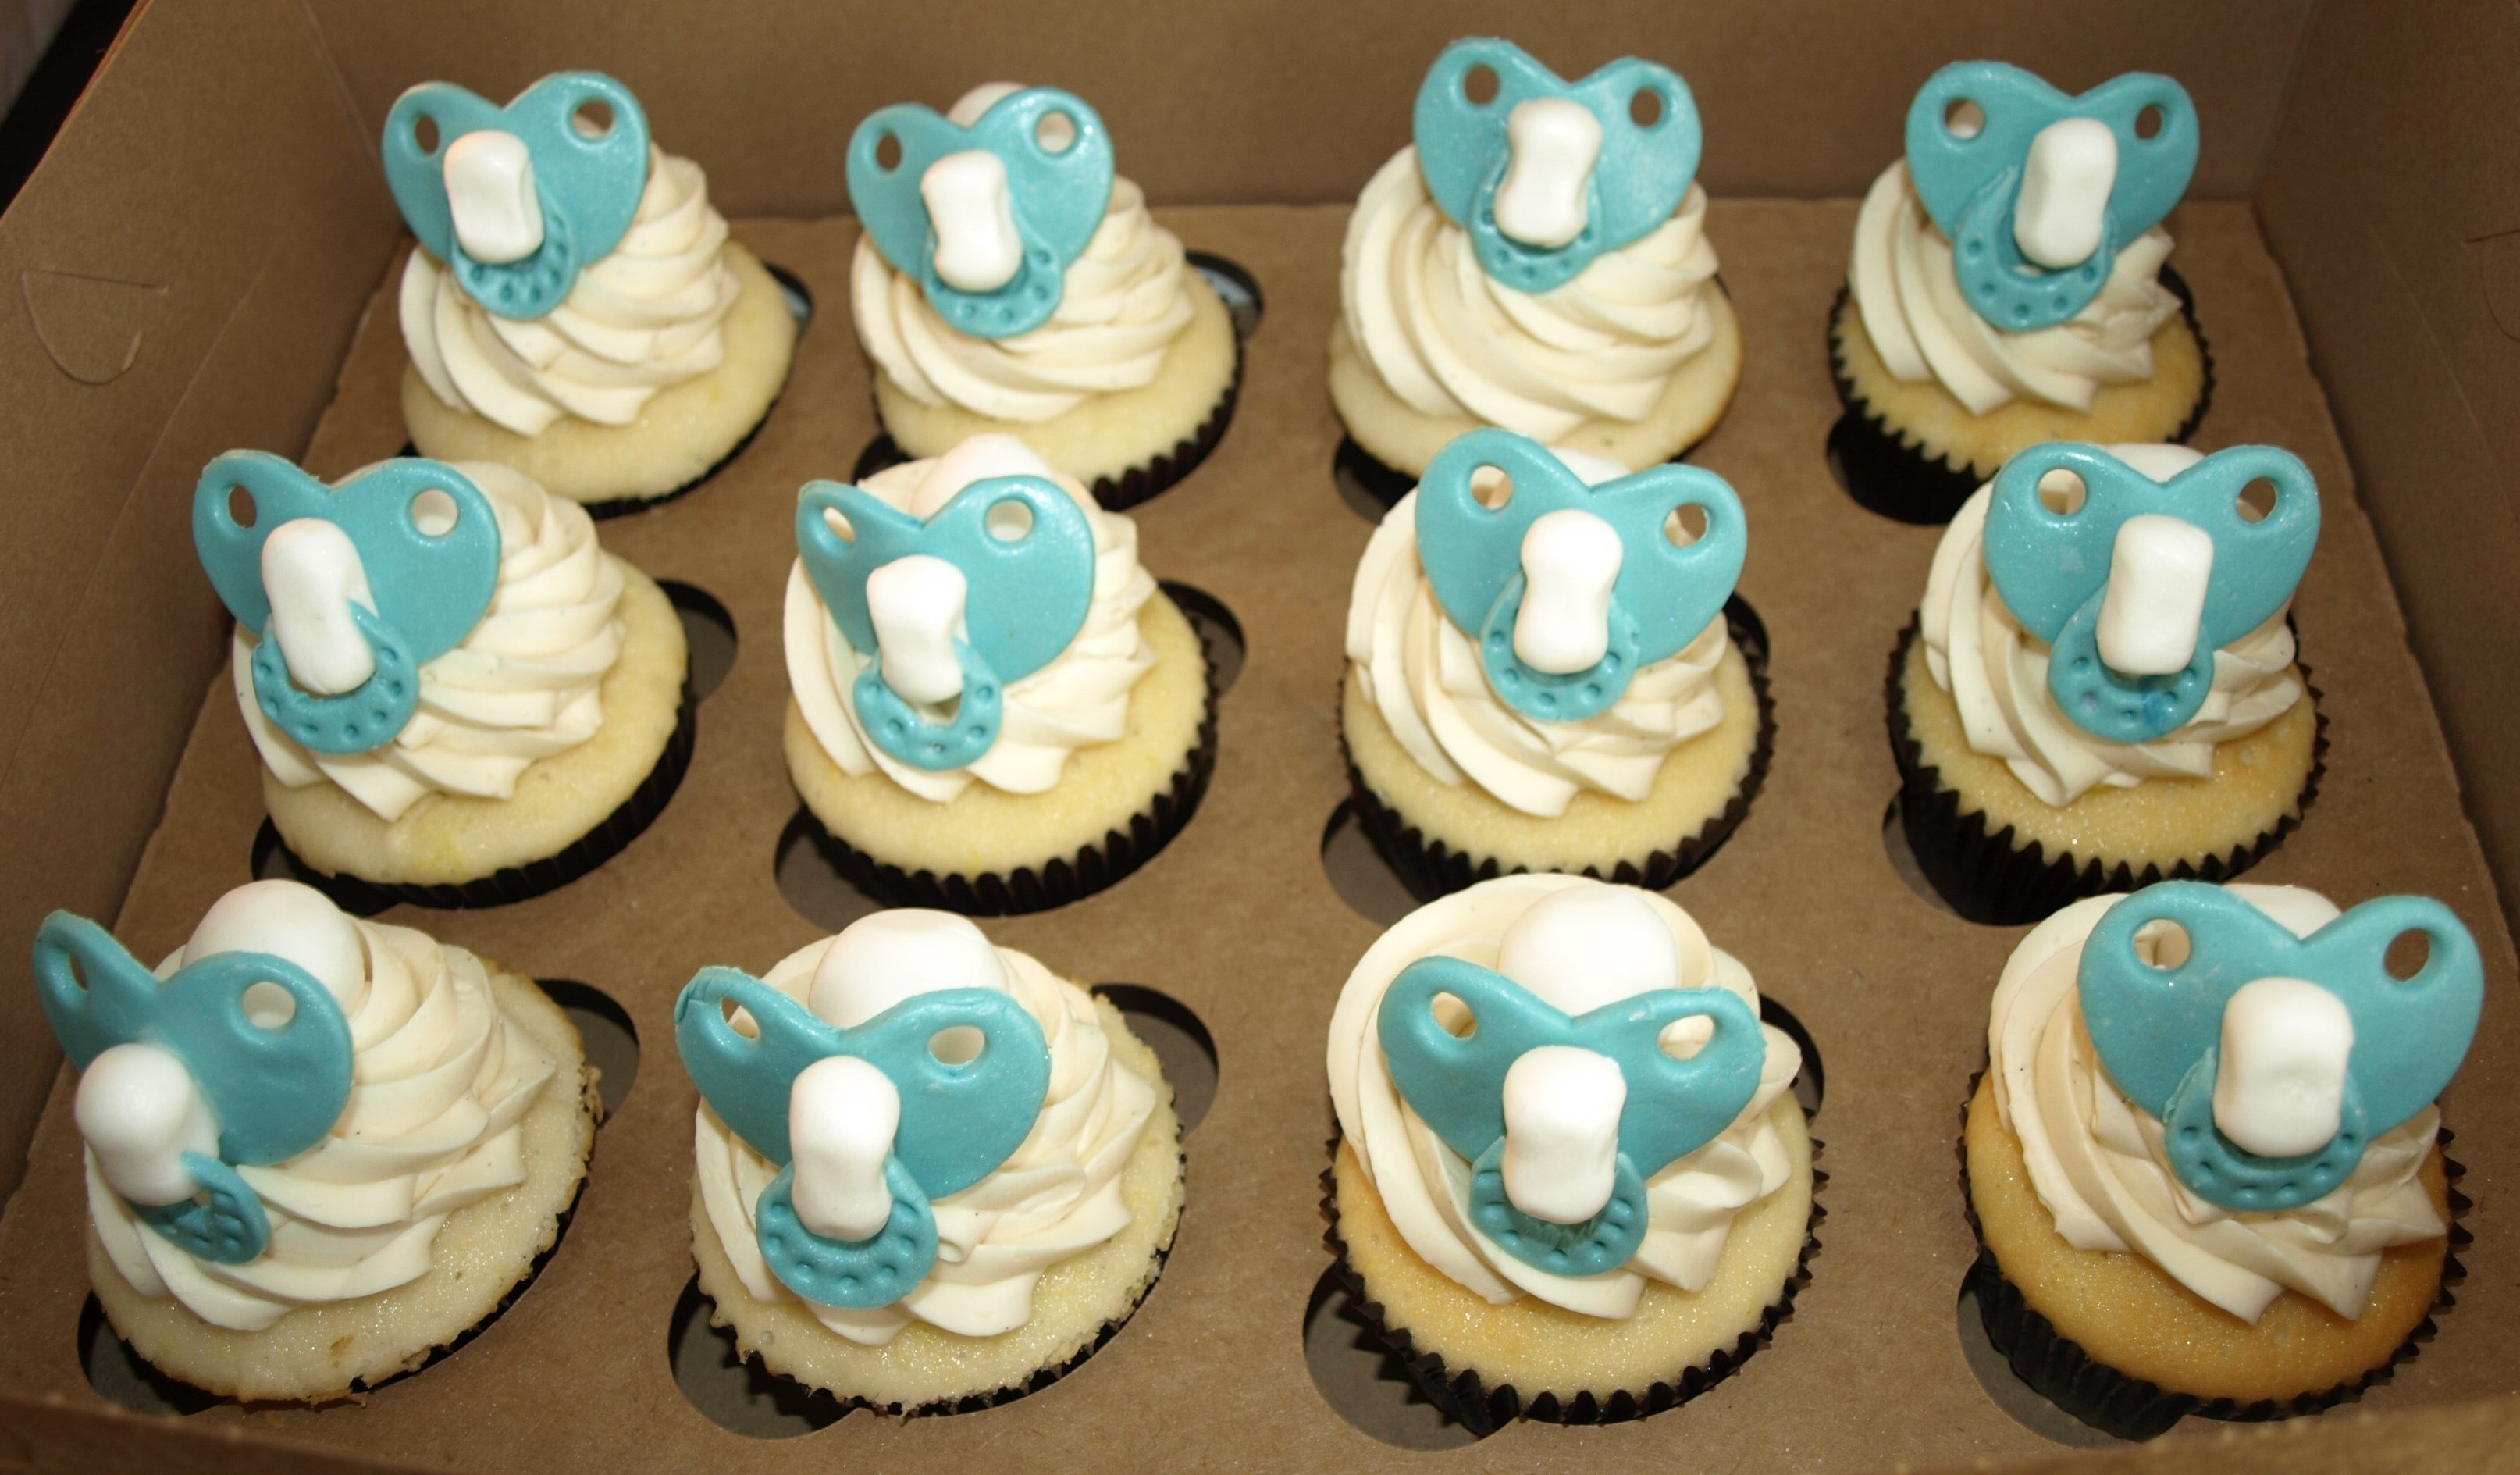 10 Trendy Baby Shower Cupcake Ideas For A Boy baby boy shower cupcake ideas formal baby shower cupcakes long 1